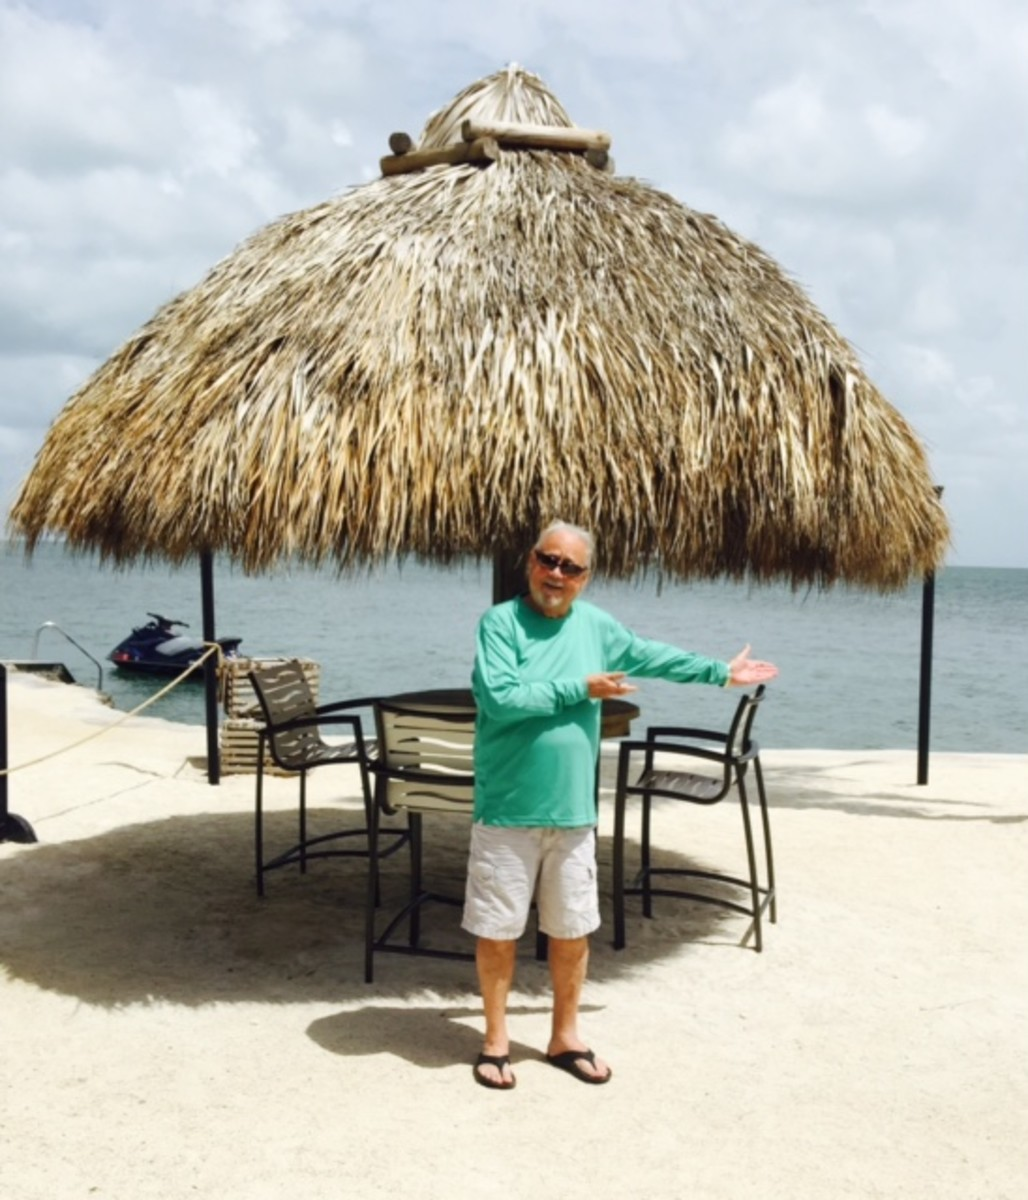 Probably the two most popular things that you can count on finding in the Keys are; Tiki Huts and Sunshine. Here I am showing my friends back home what to expect down here.